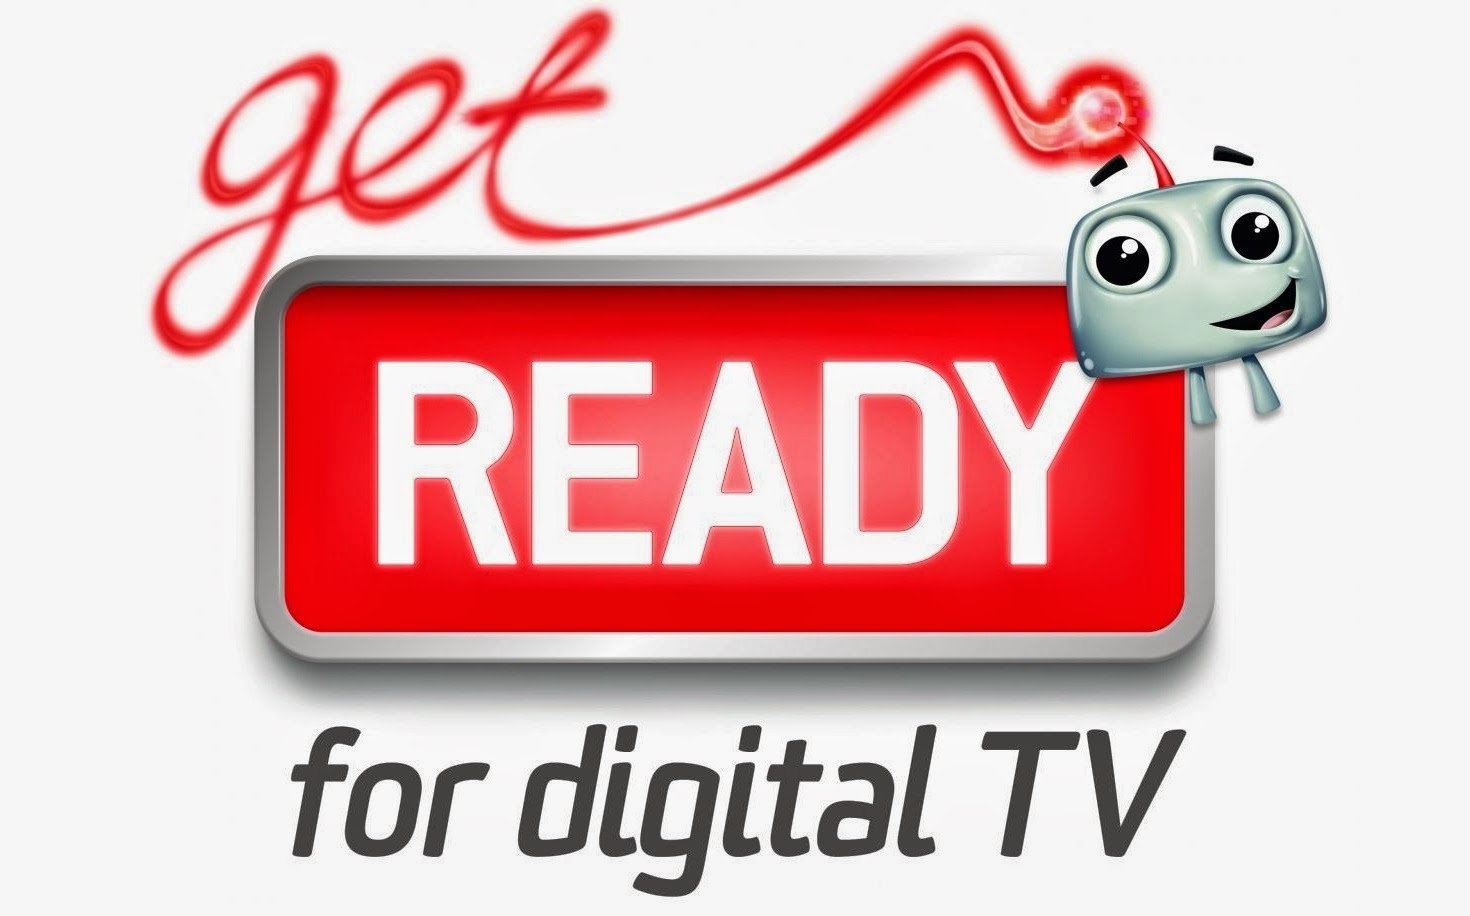 Ready for digital TV